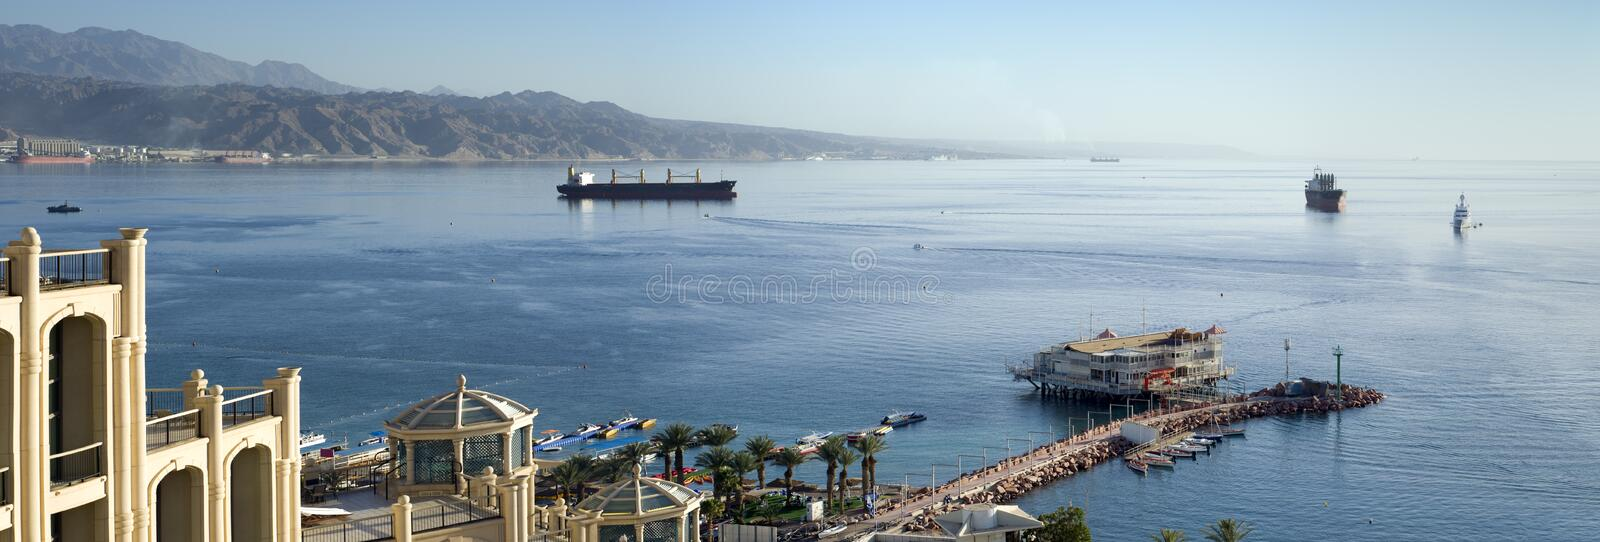 View on the gulf of Aqaba from Eilat, Israel royalty free stock photos